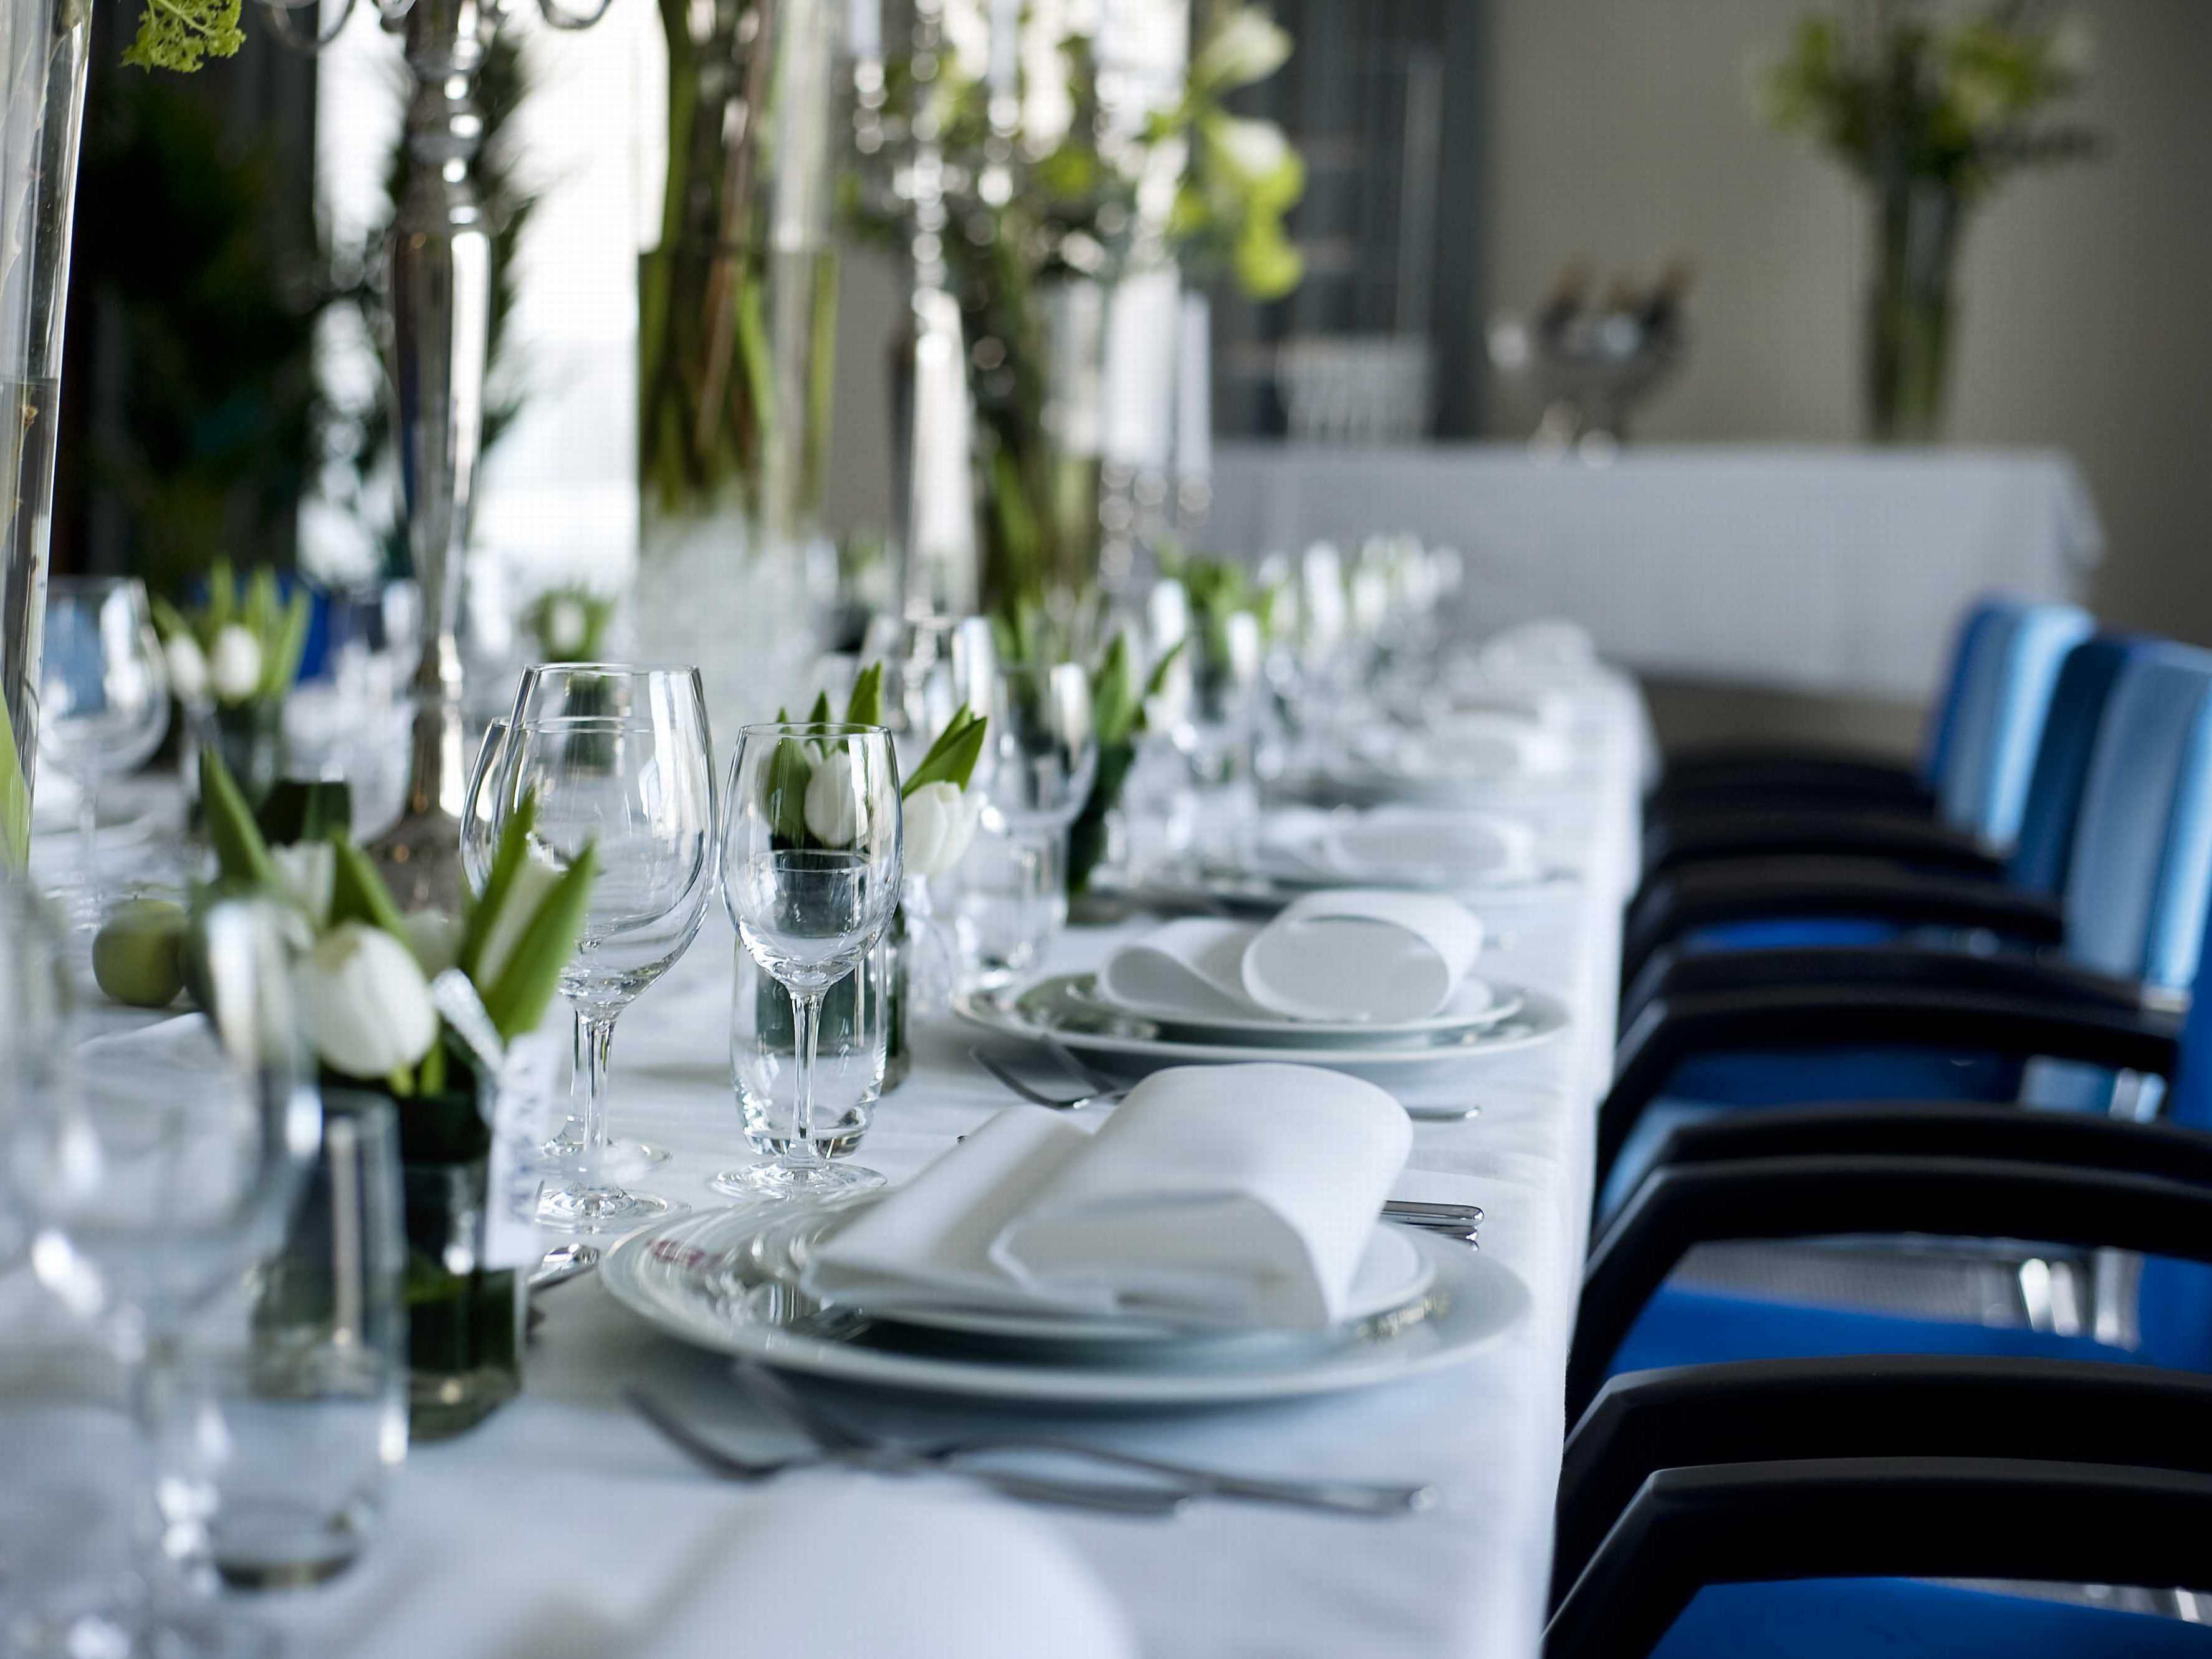 Enjoy a lovely tailor-made private dinner